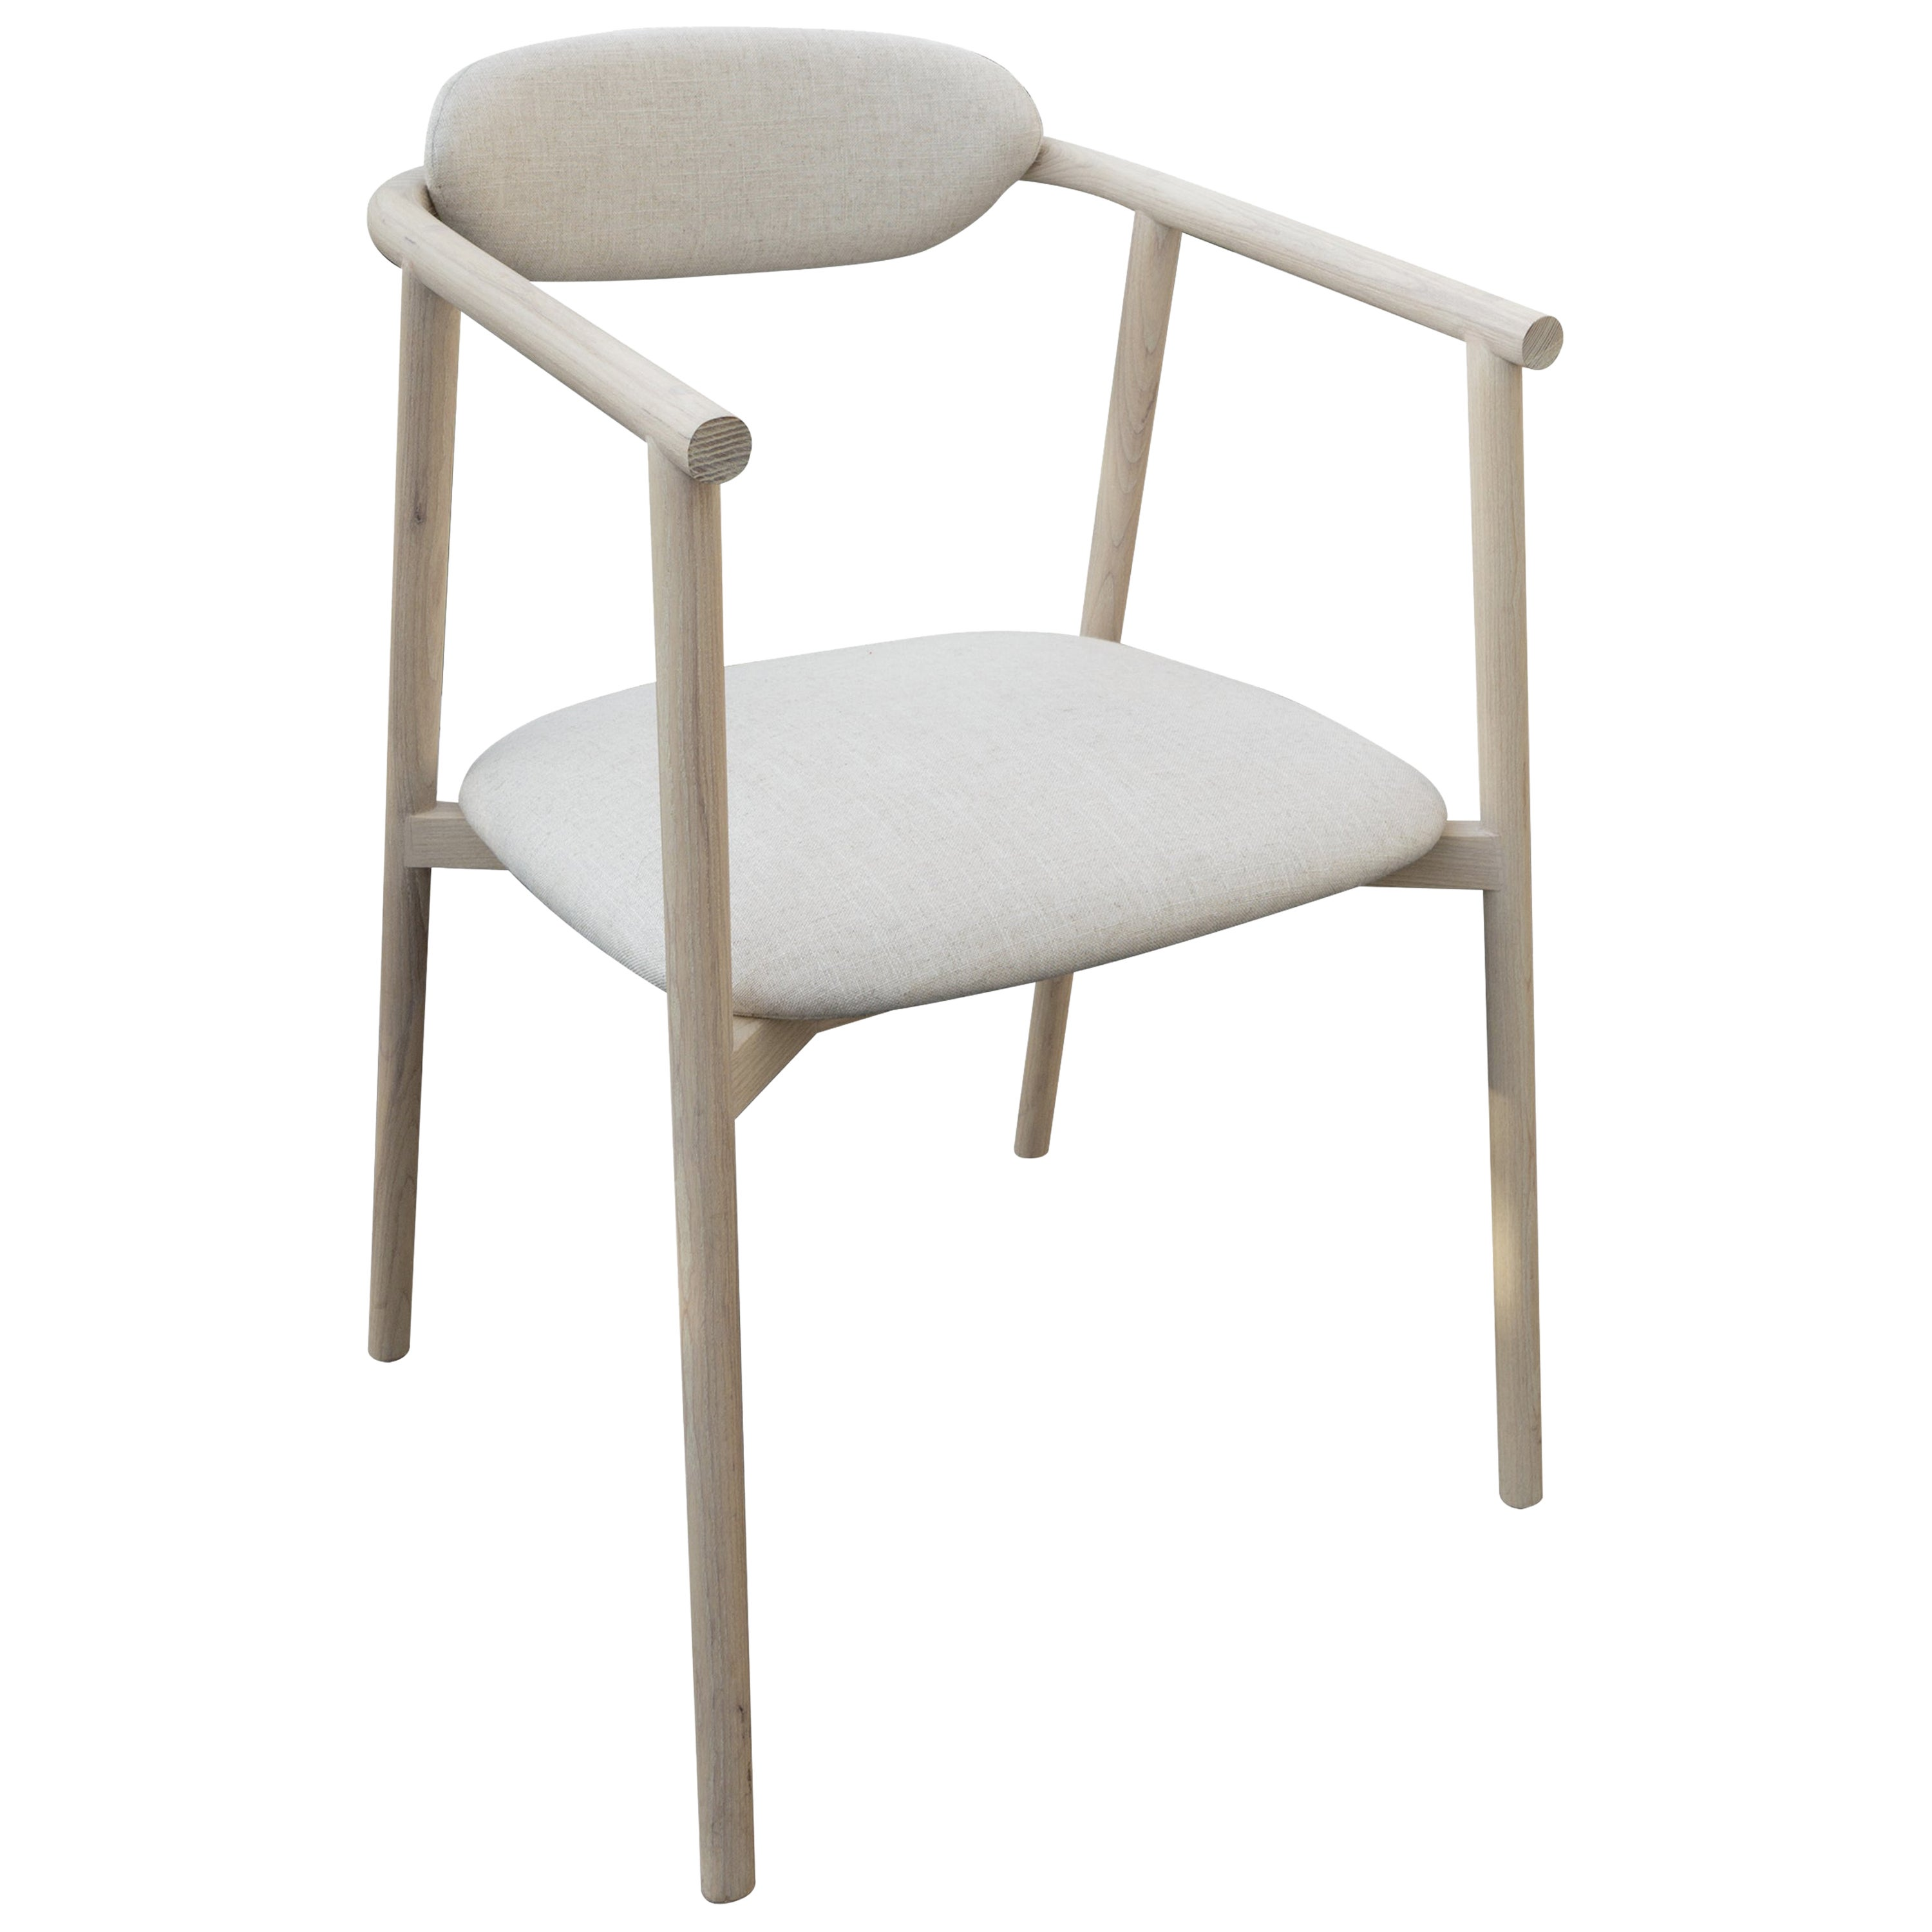 Neutra Ash Carved Wood Chair with Linen Color Upholstered Backrest and Seat